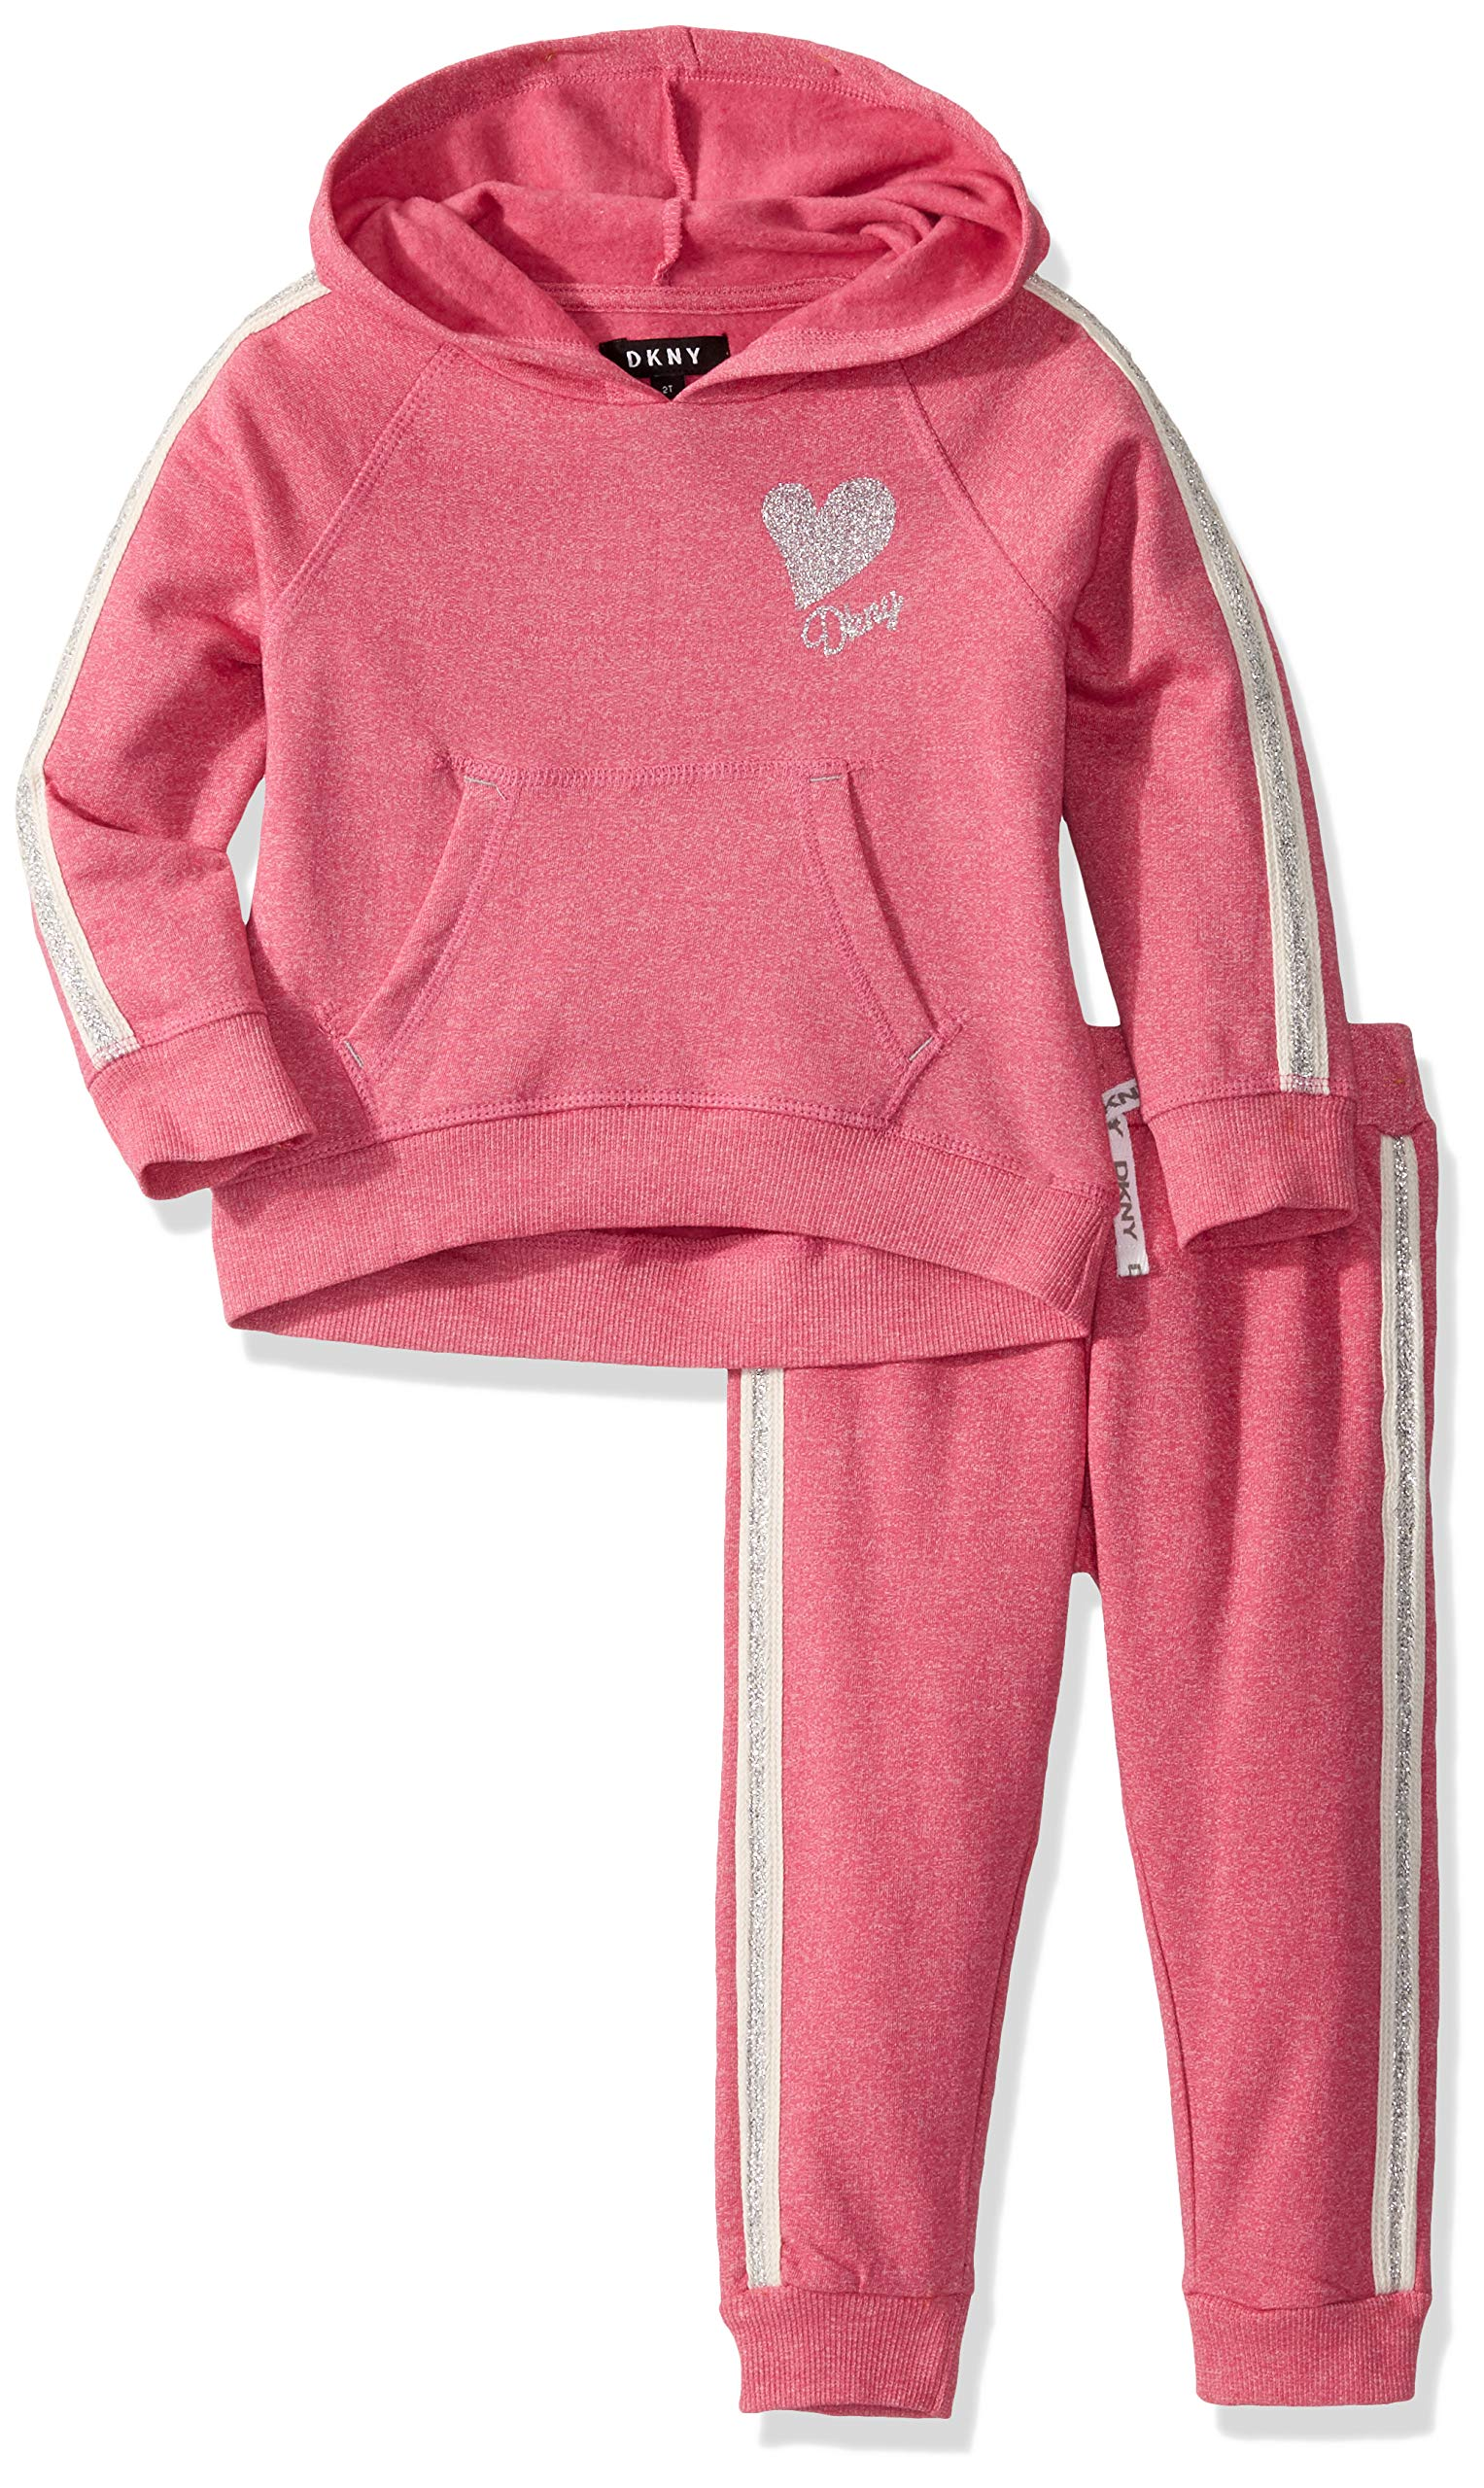 DKNY Girls' 2 Piece Hoodie Track Set